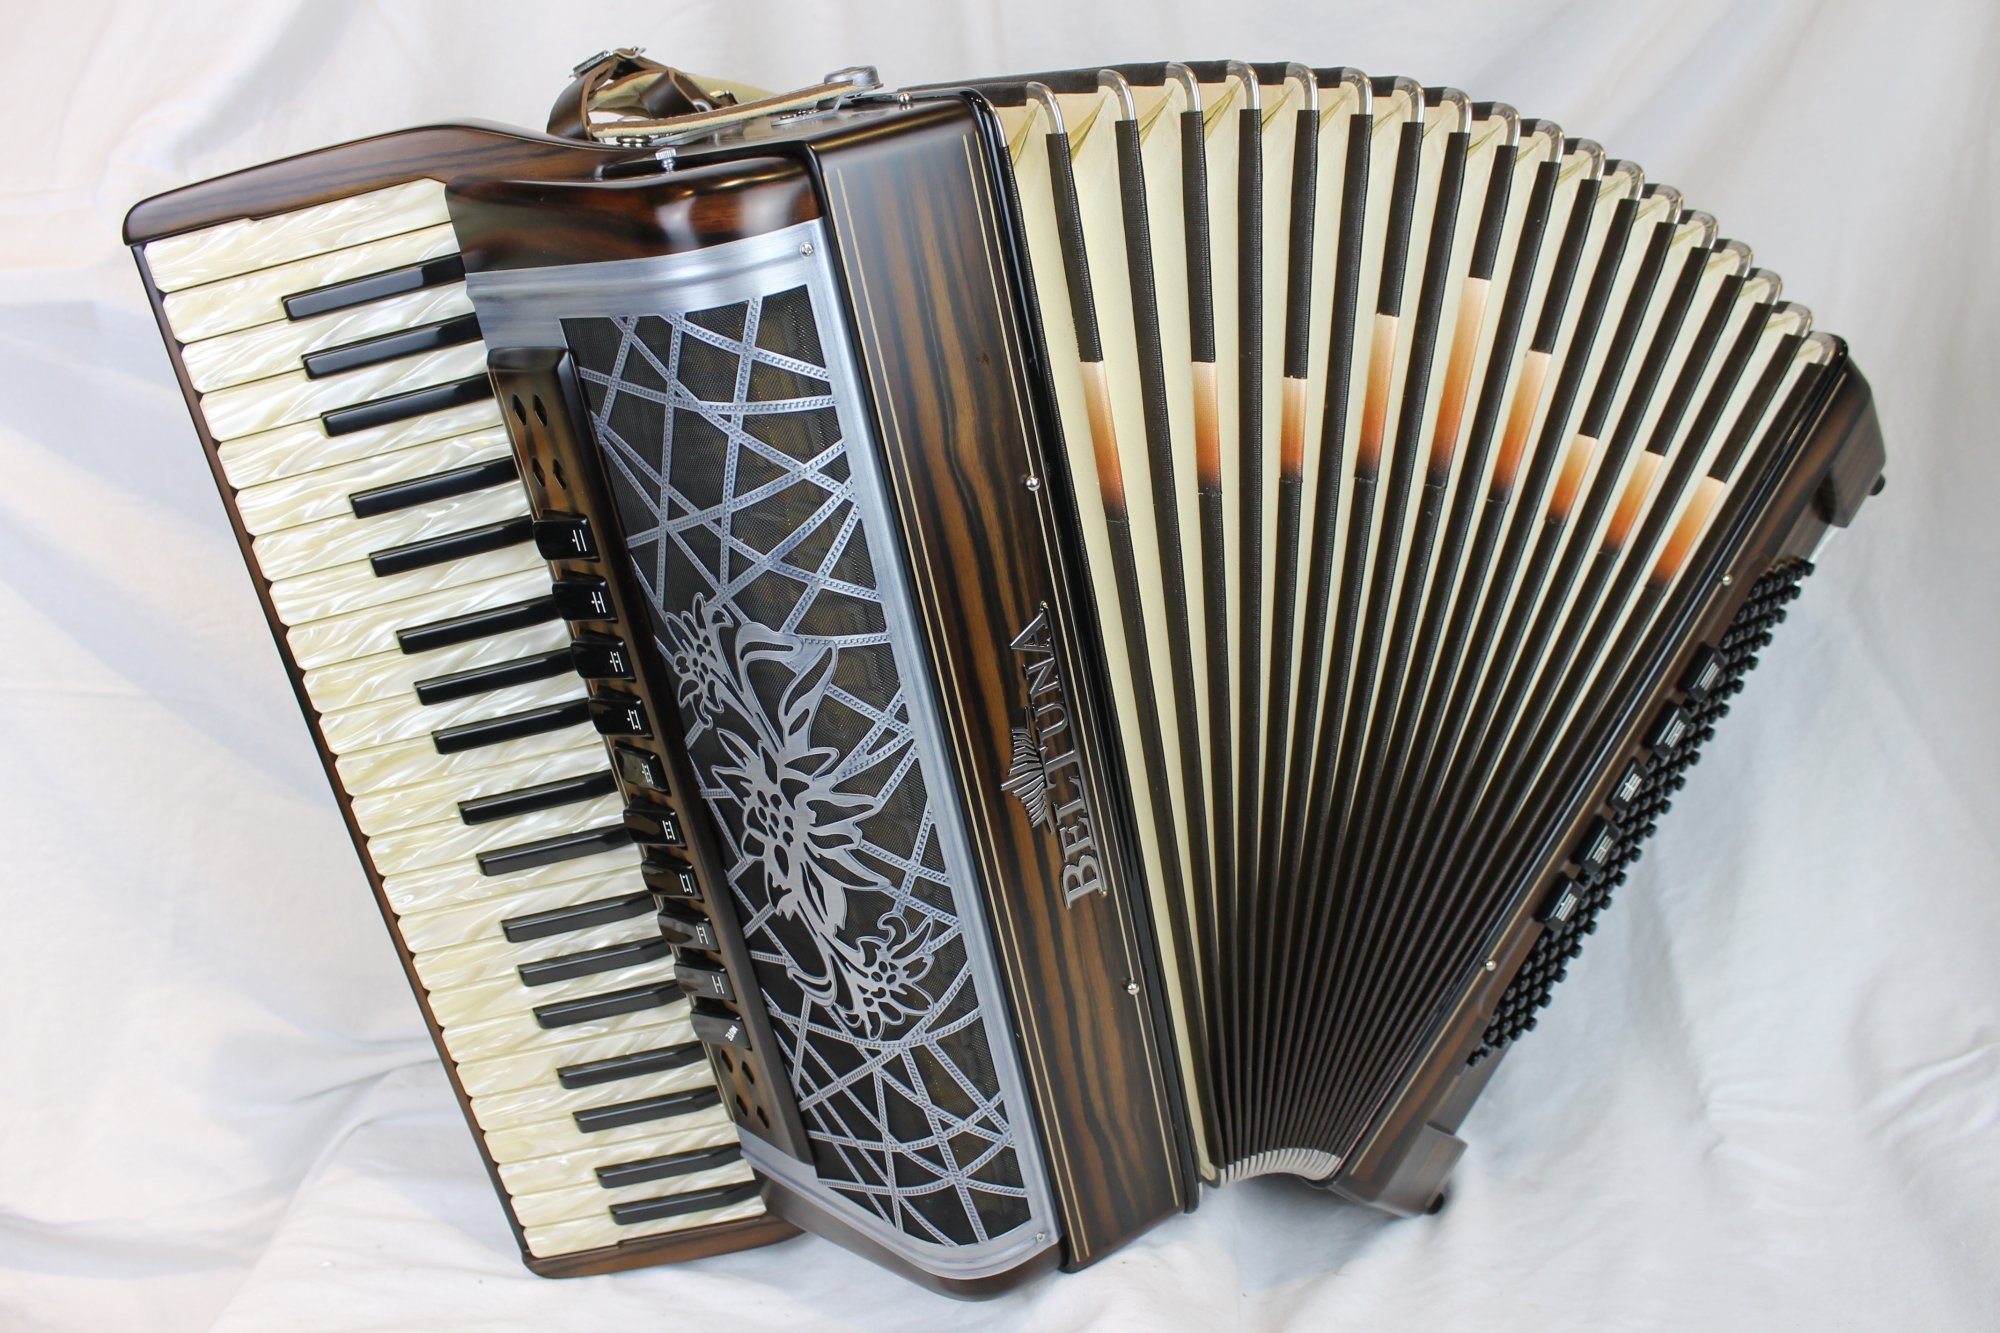 NEW Ebony Beltuna Alpstar IV M PIano Accordion LMMM 41 120